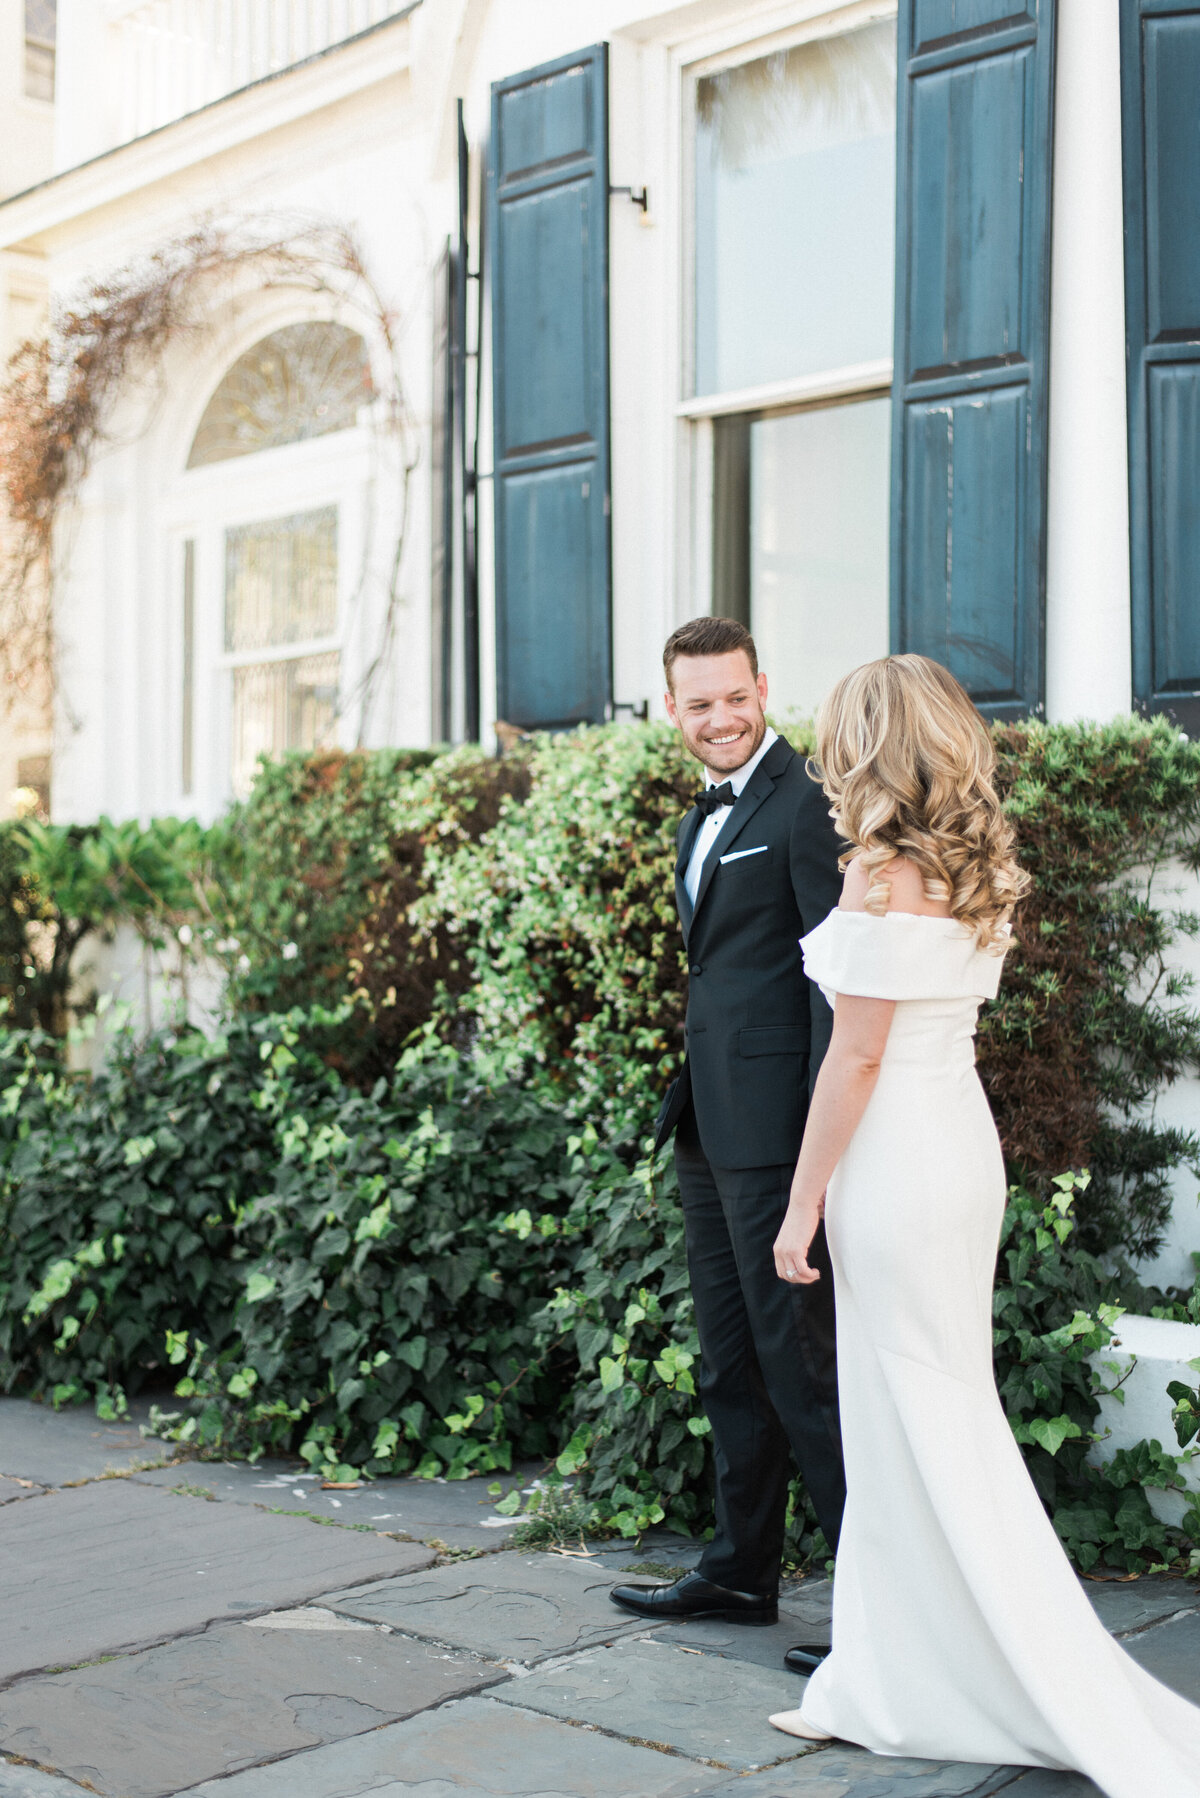 Groom guides his bride along the side of an ivy covered building